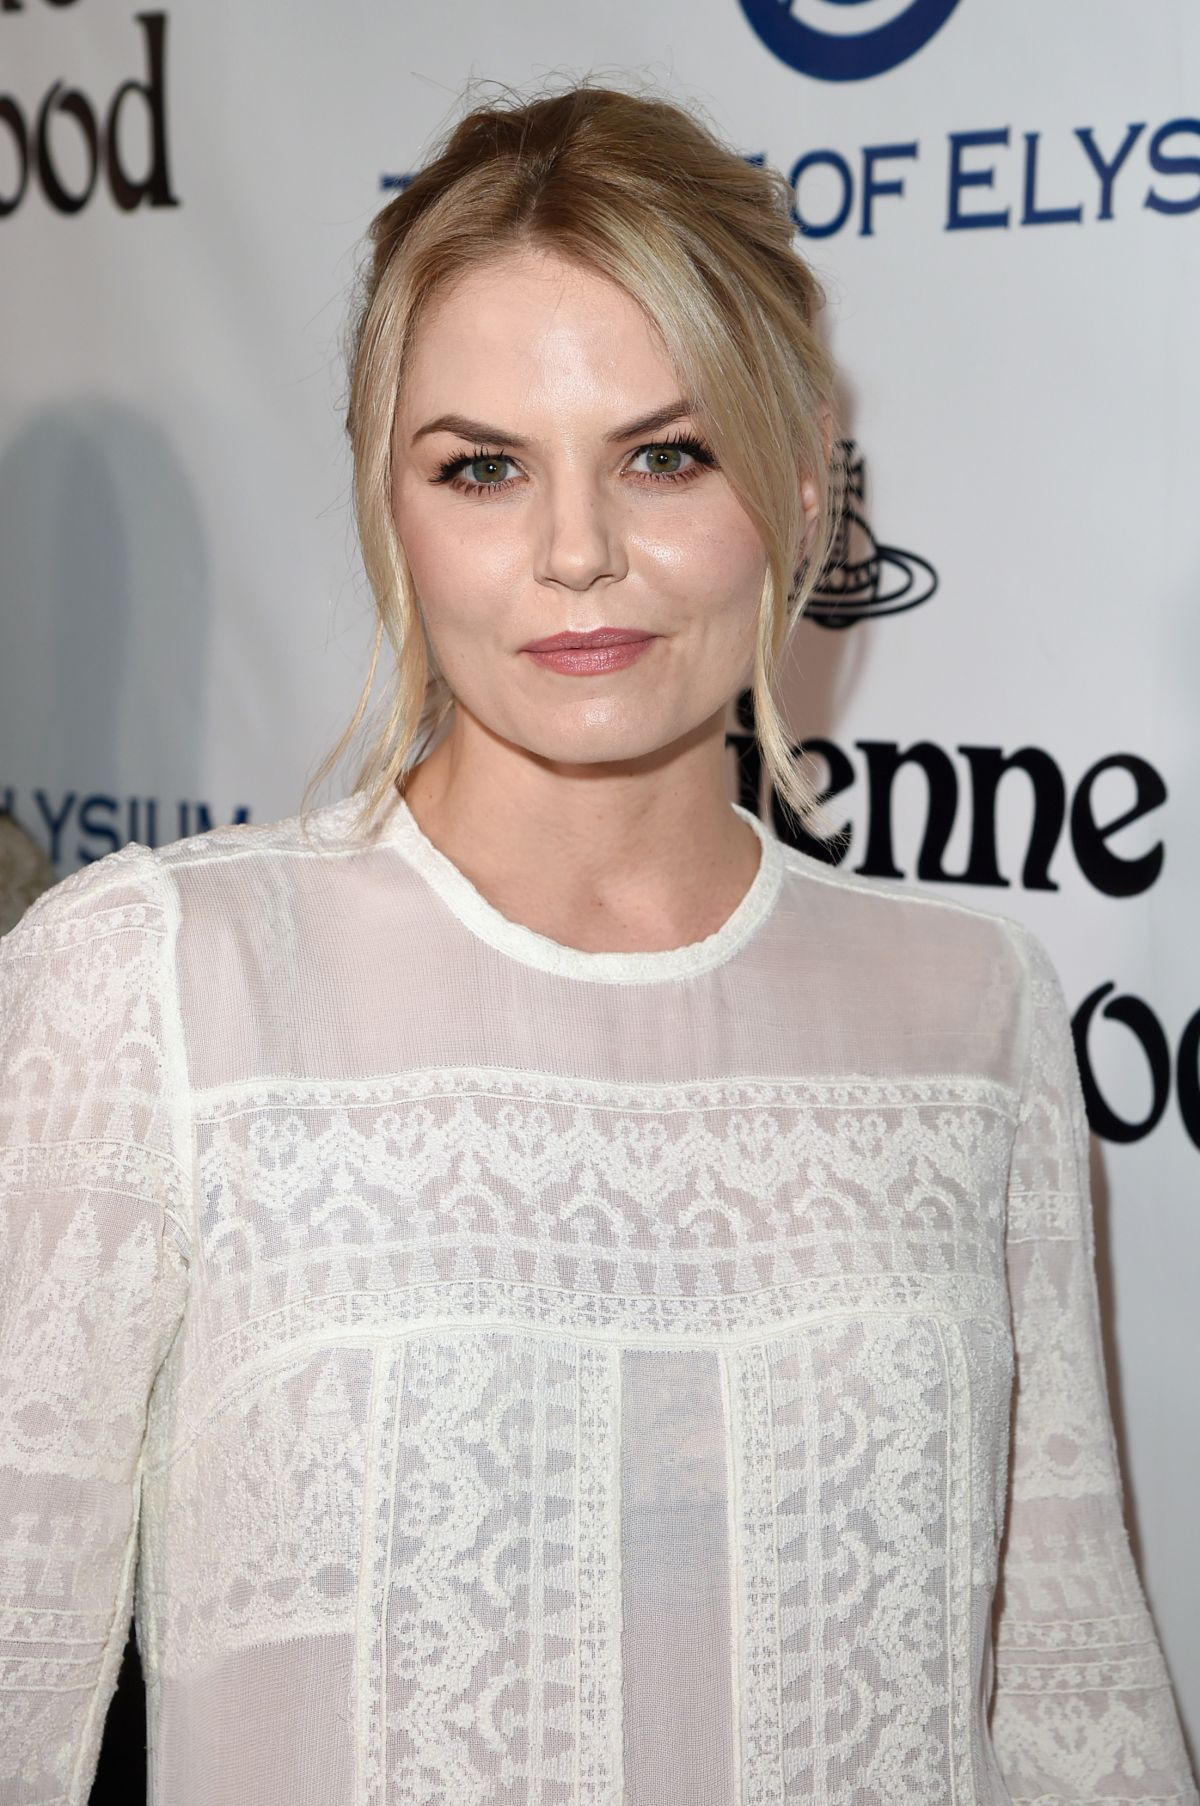 Jennifer Morrison At The Art of Elysium 2016 HEAVEN Gala